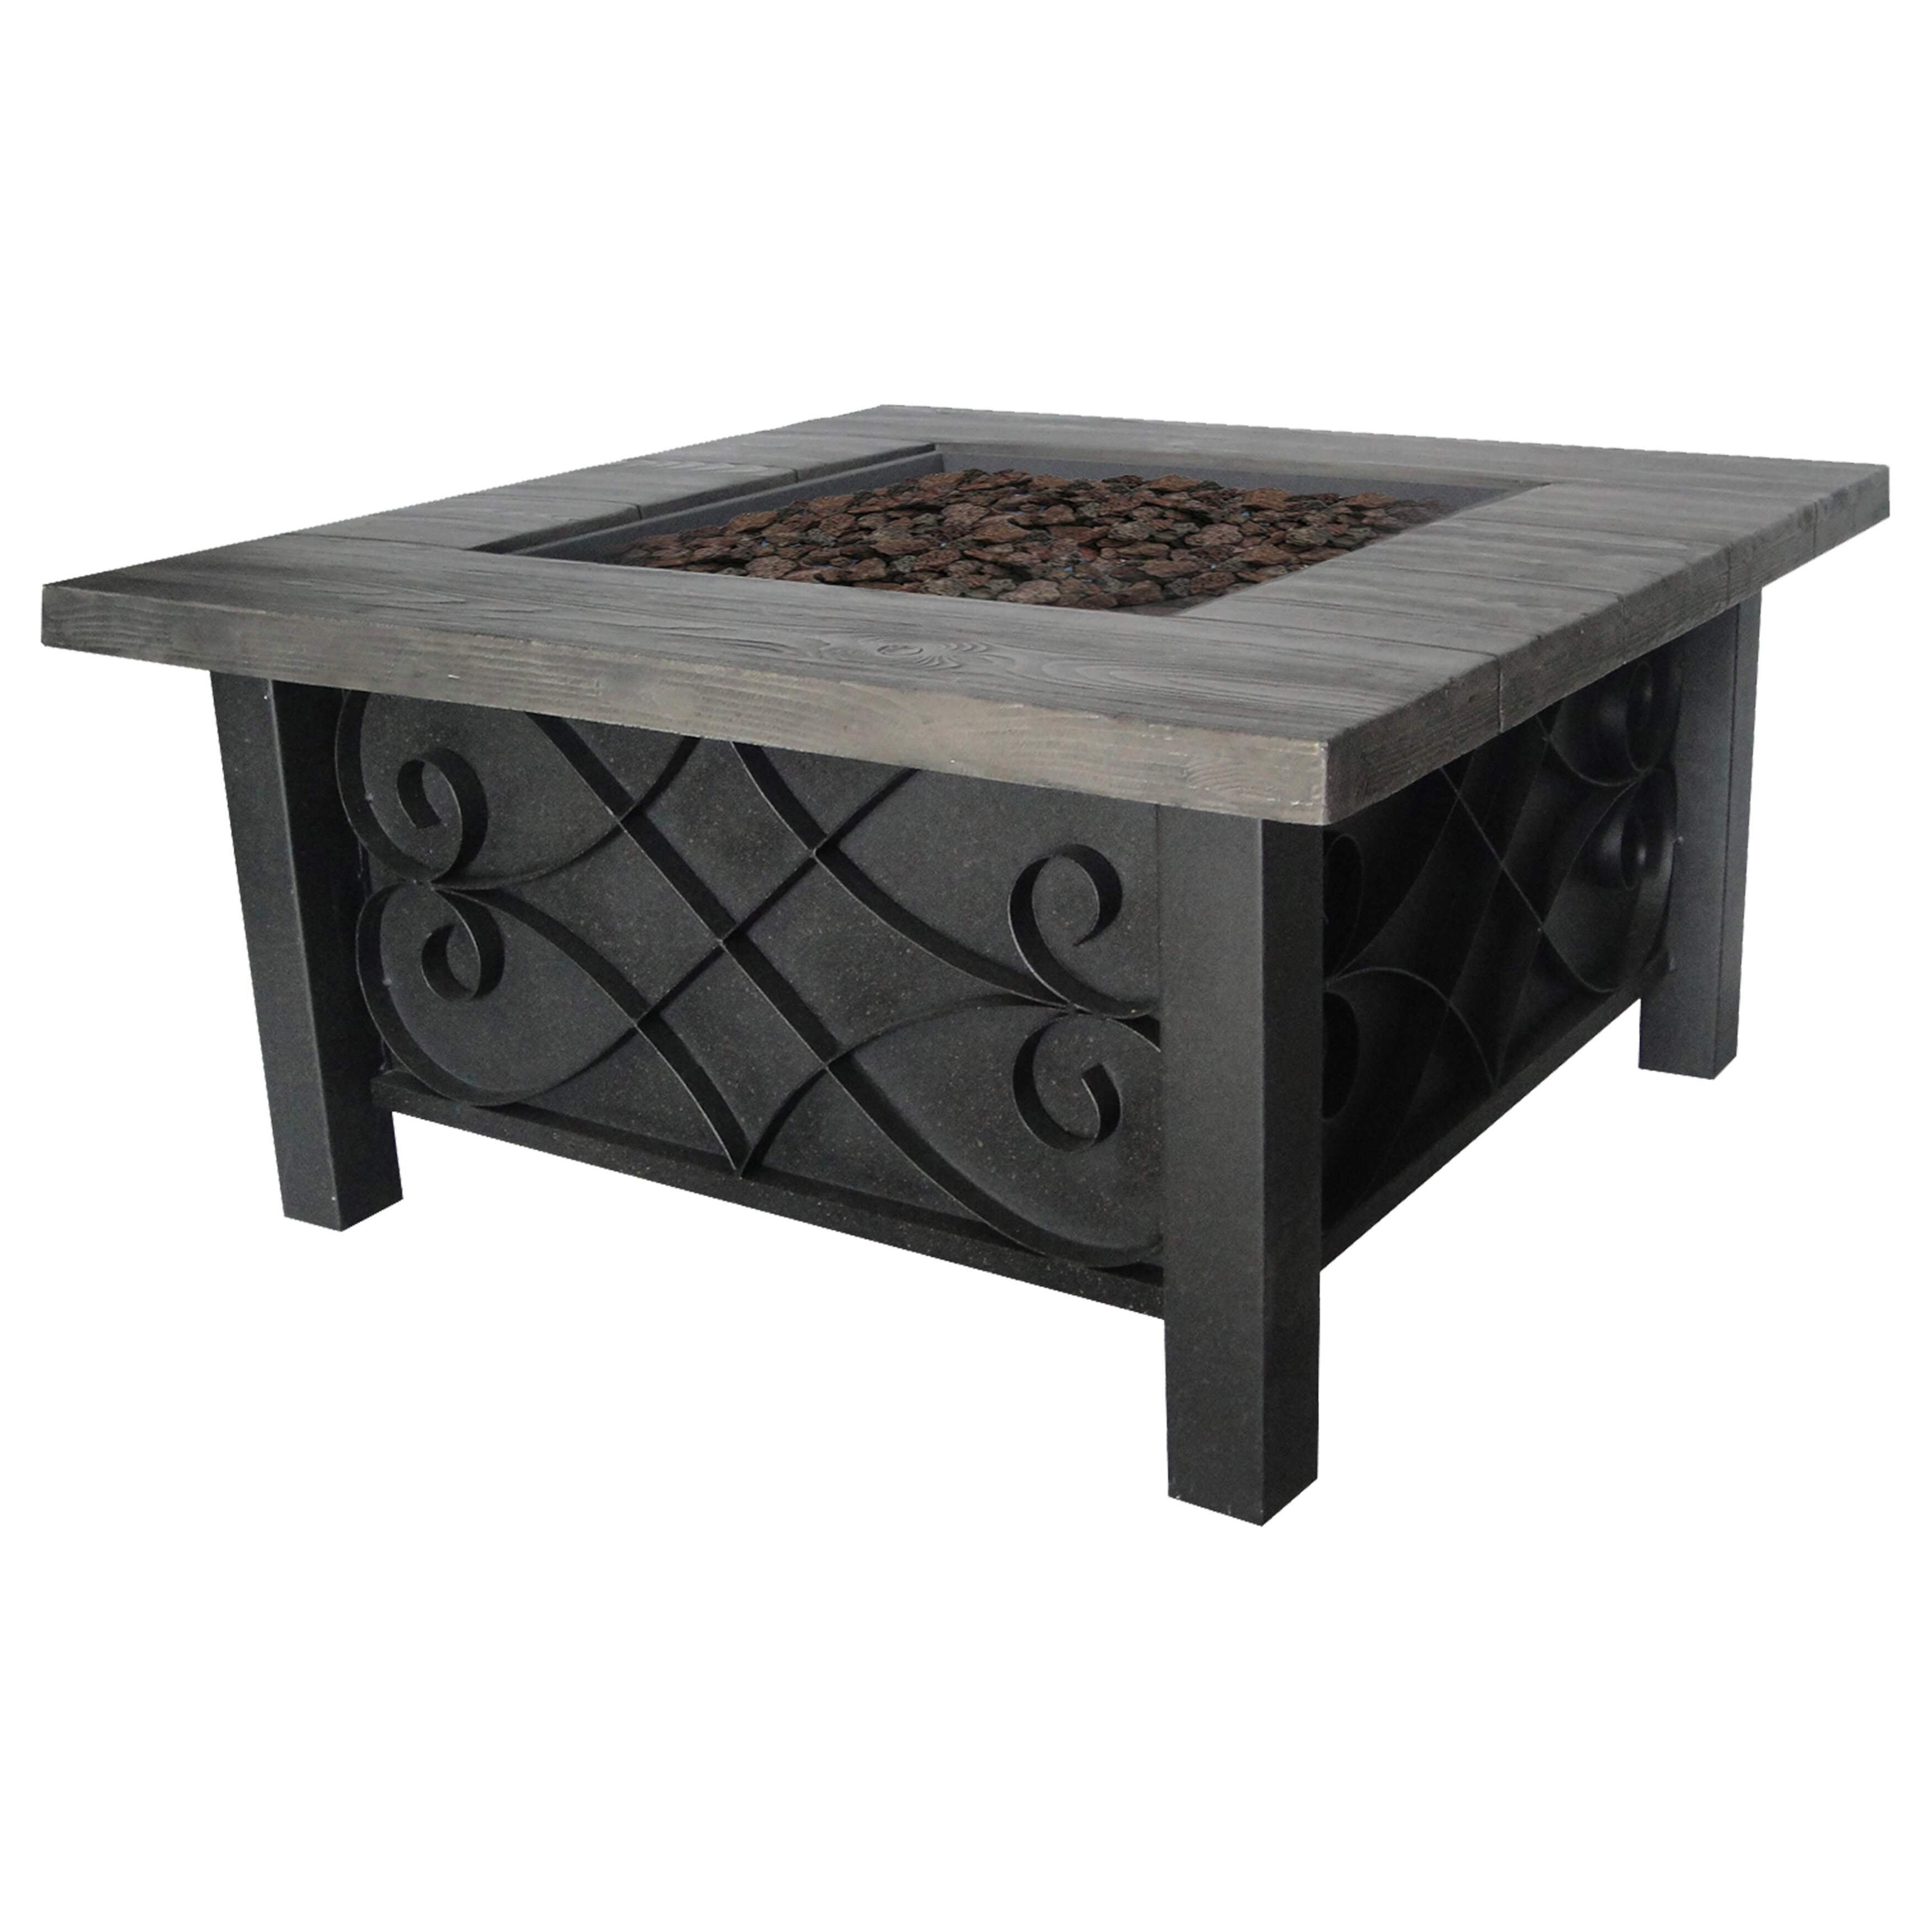 Bond Marbella Steel Gas Outdoor Table Top Fireplace